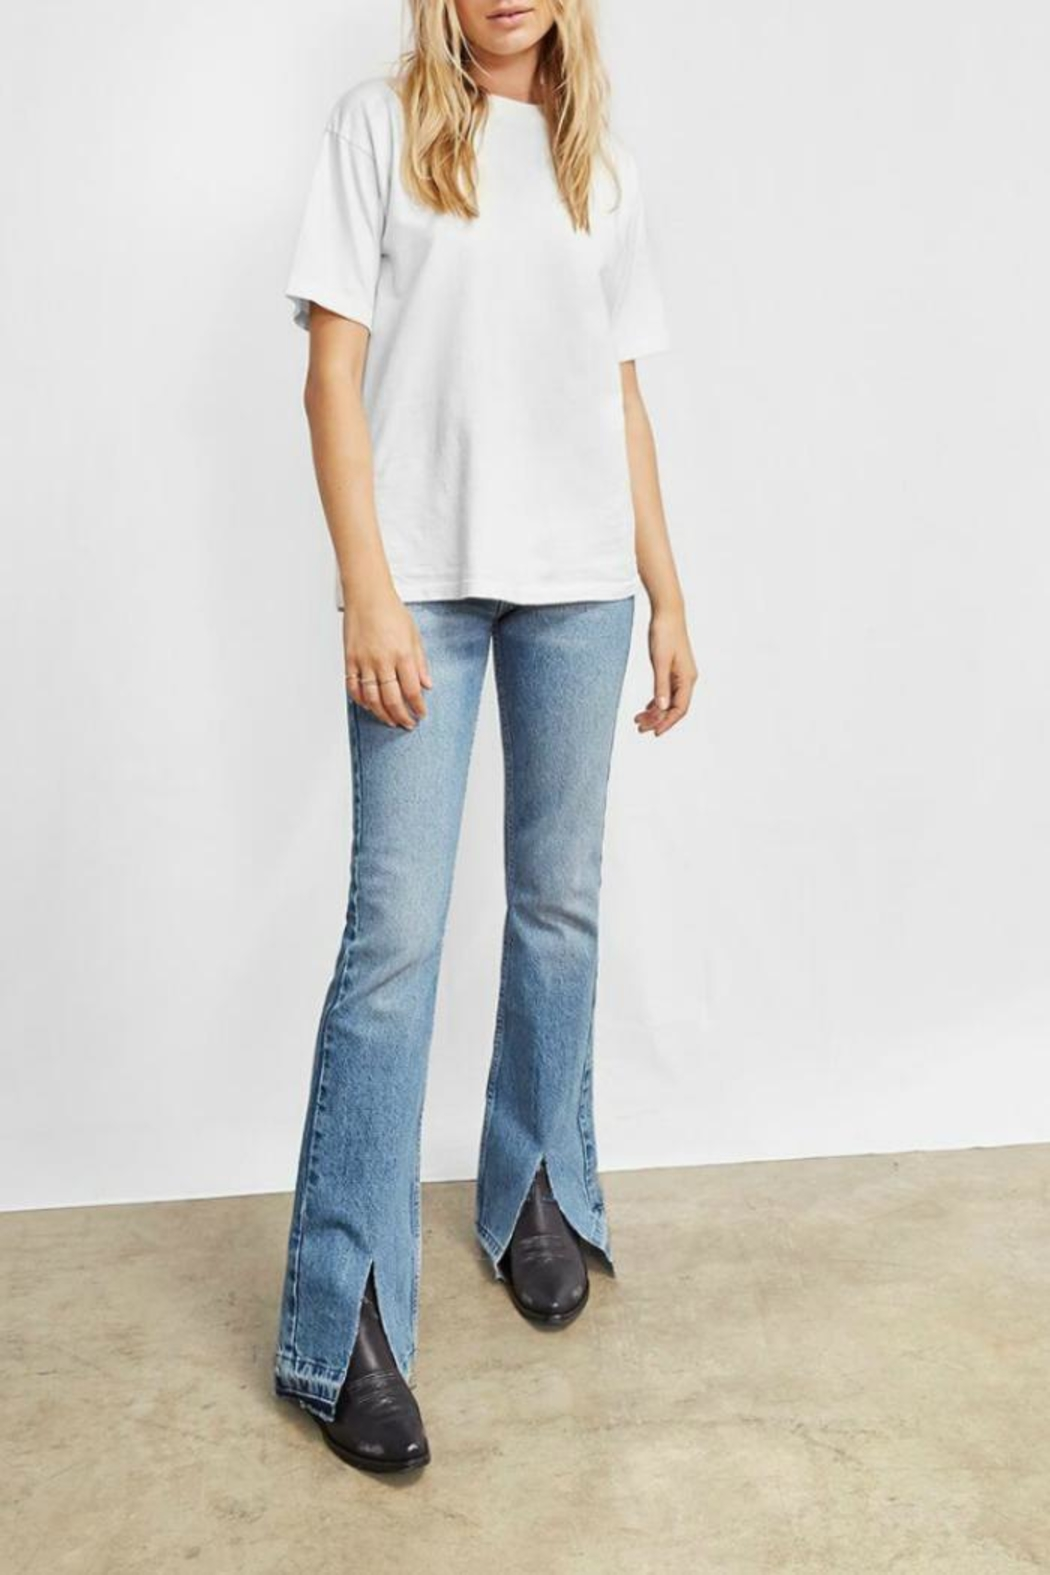 c7a3706c7e Anine Bing Perfect White Tee from Canada by Era Style Loft — Shoptiques